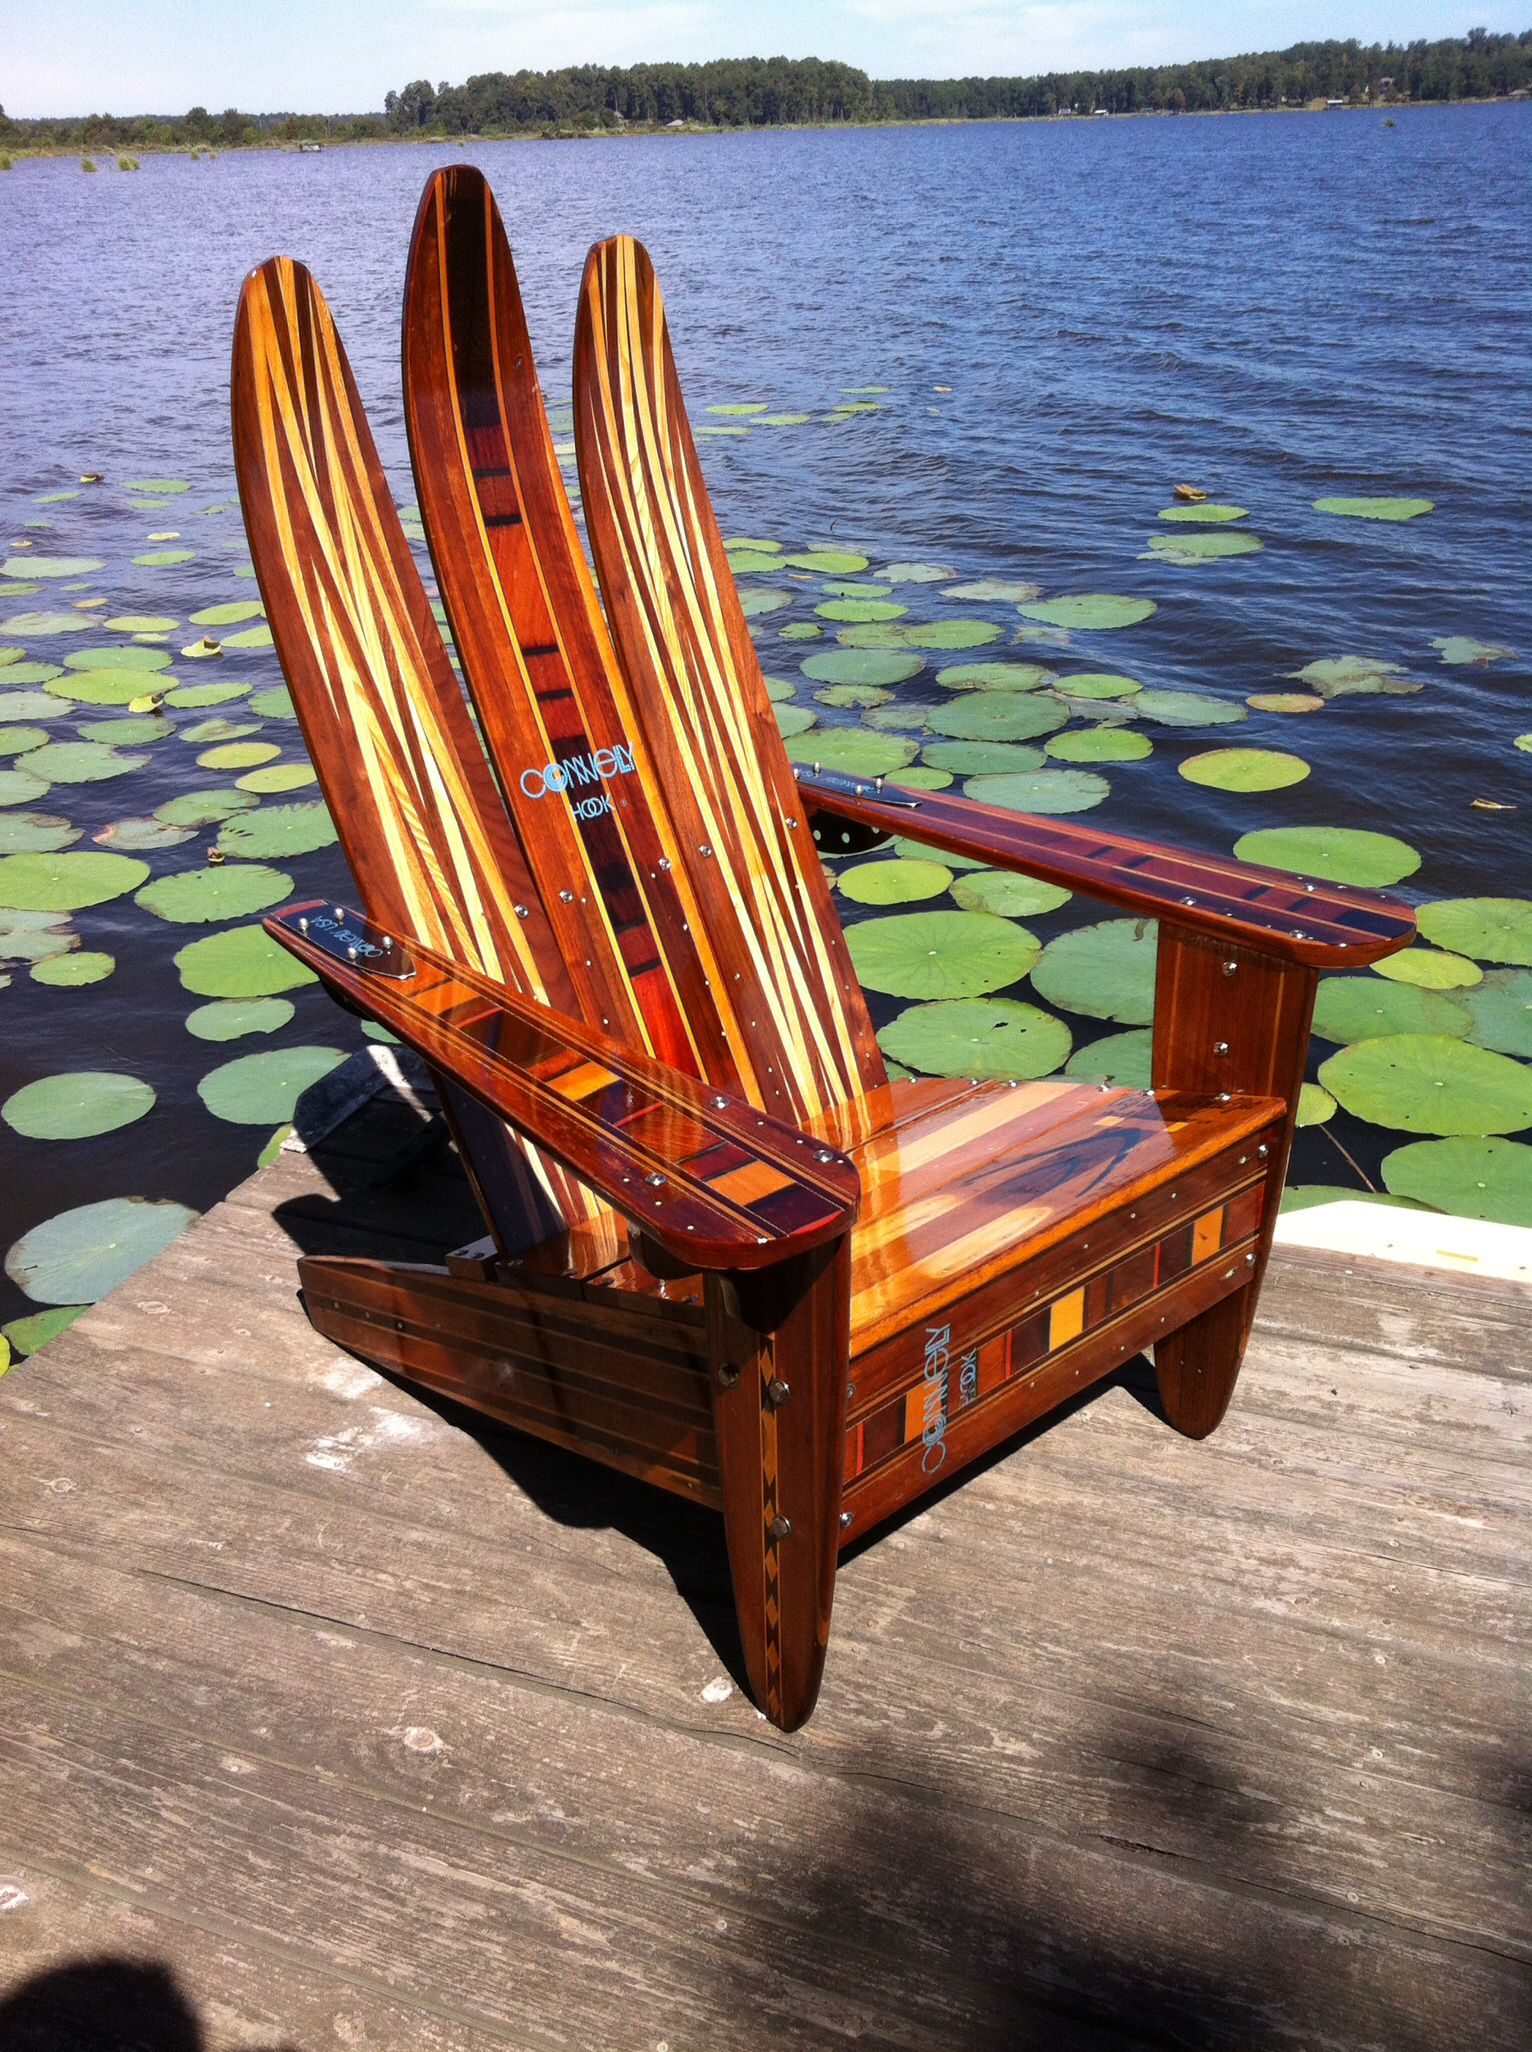 Actually a local Astorian built this waterski chair handcrafted – Waterski Chair